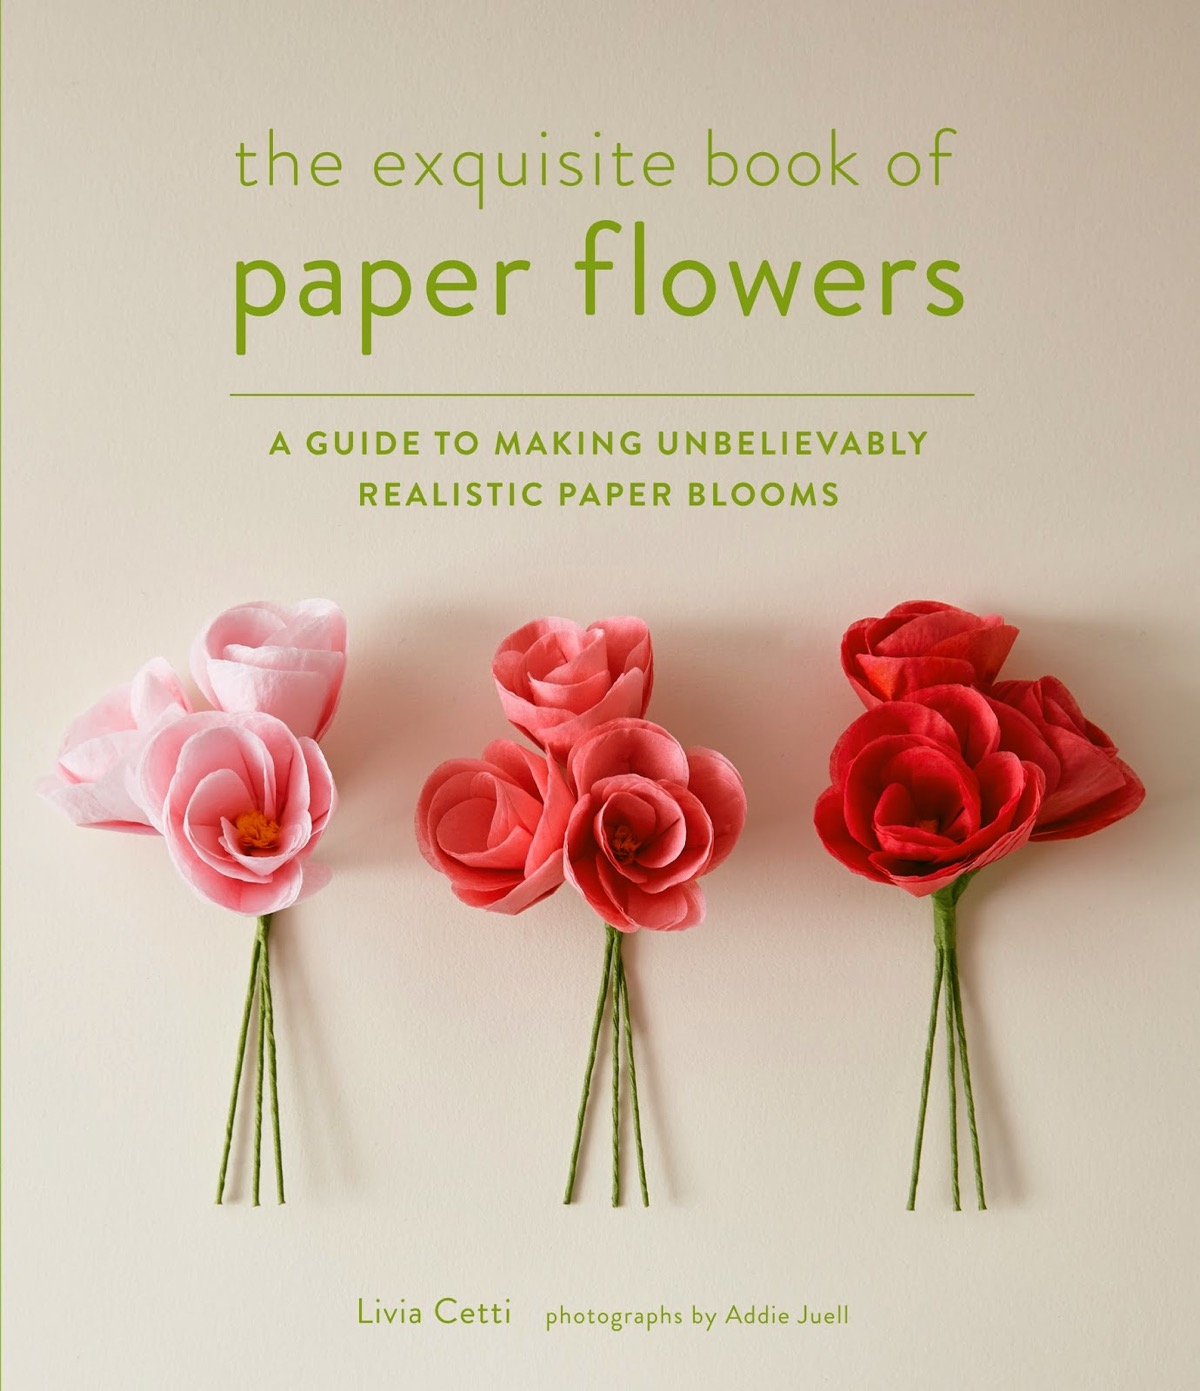 Cool product alert a book to help you make incredibly realistic cool product alert a book to help you make incredibly realistic paper flowers mightylinksfo